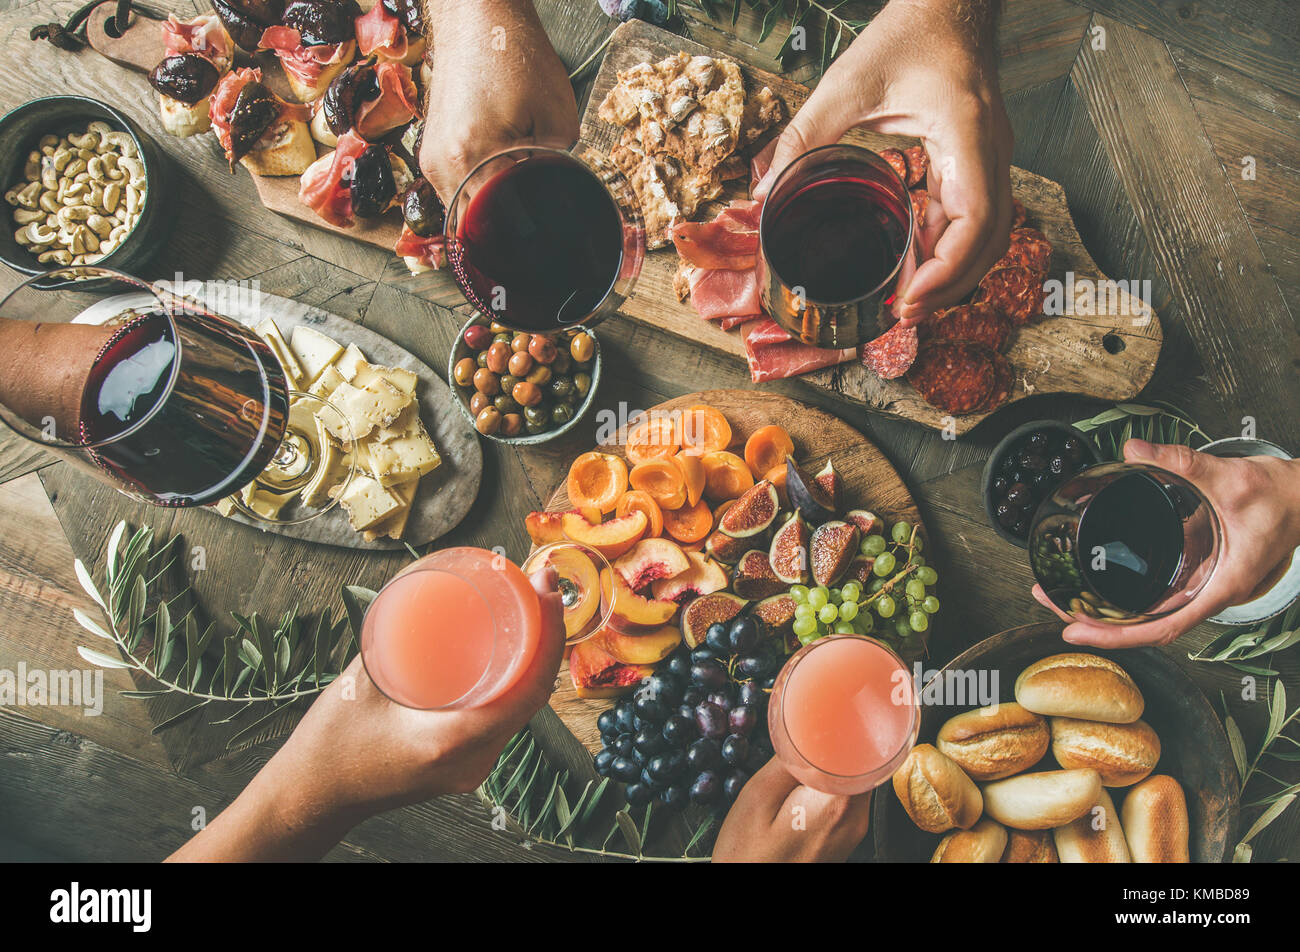 People having party sitting at table set with wine snacks - Stock Image